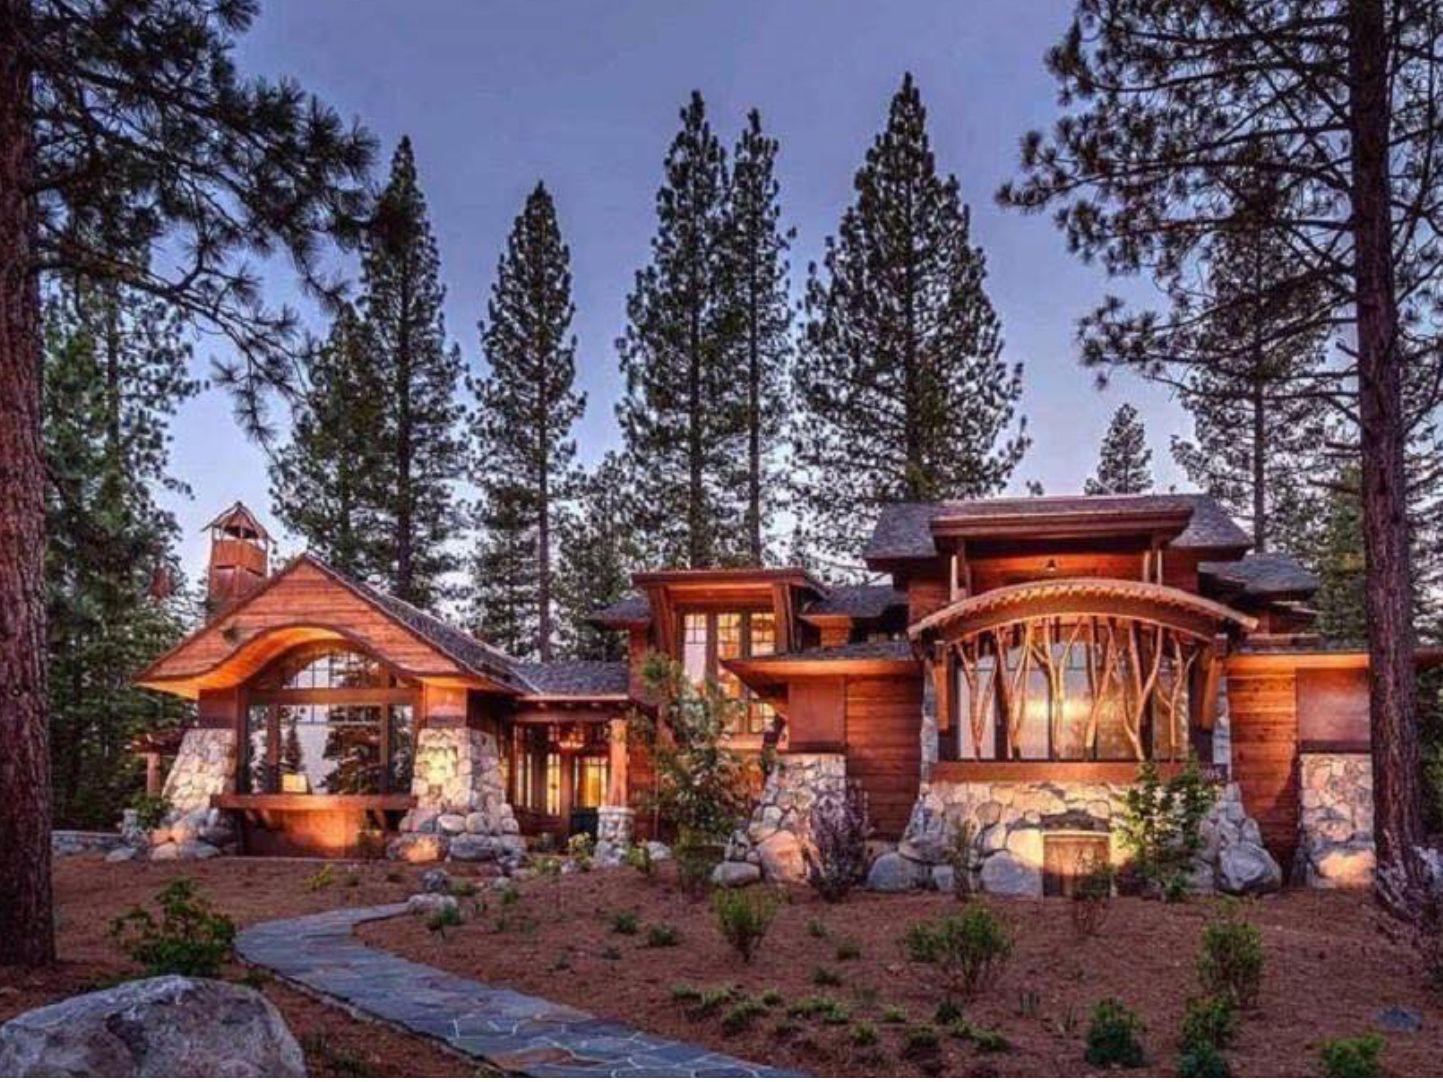 Pin By Tami Fisher On Cabins Dream Mansion Architecture Dream